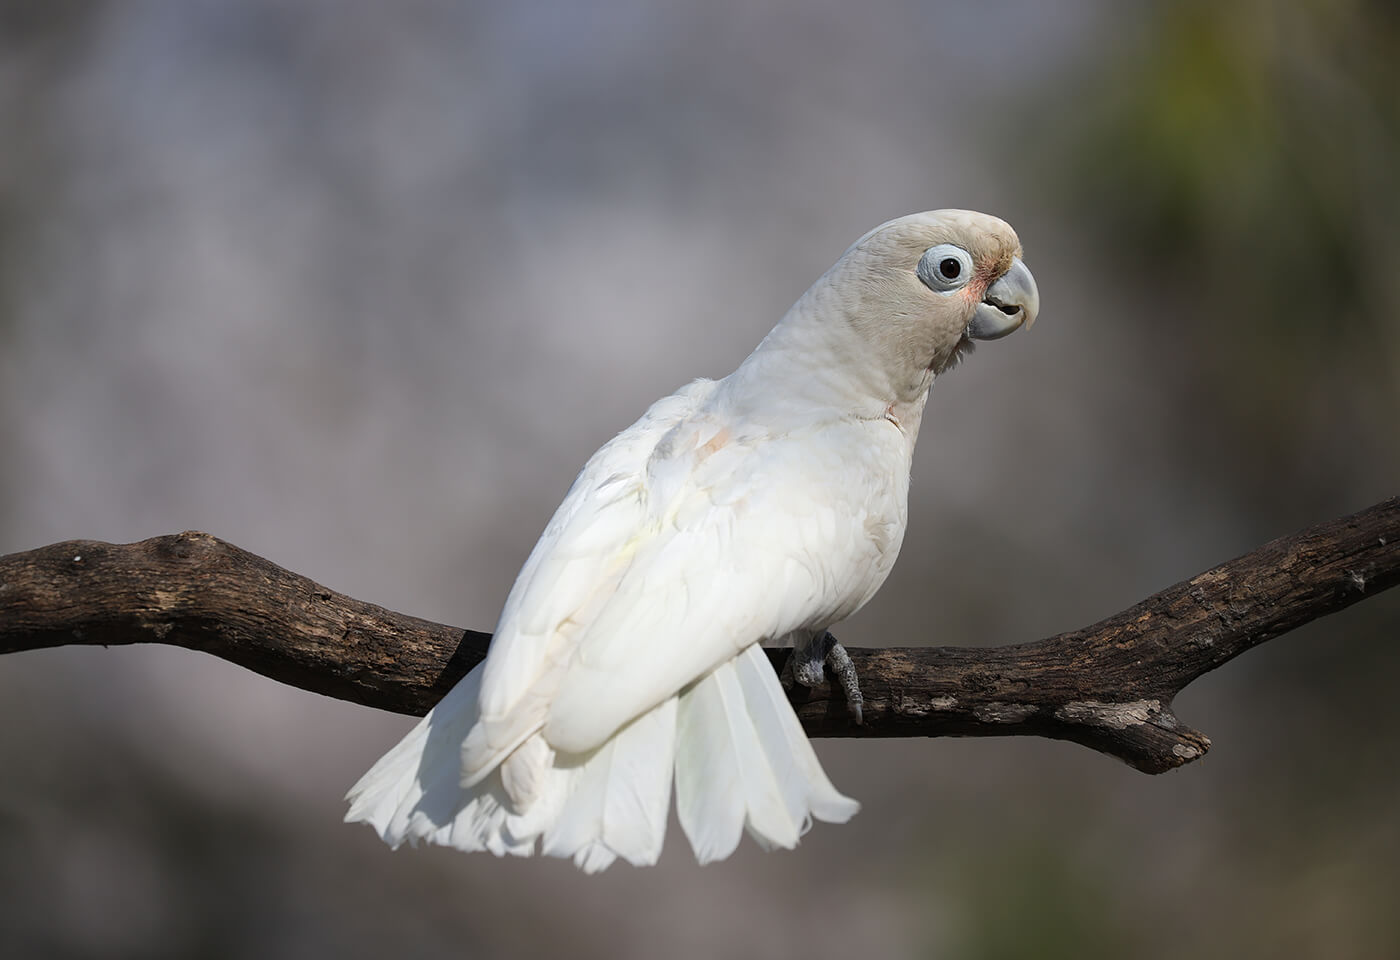 White bird perched on a tree branch, photographed with the Canon 6D Mark II DSLR camera